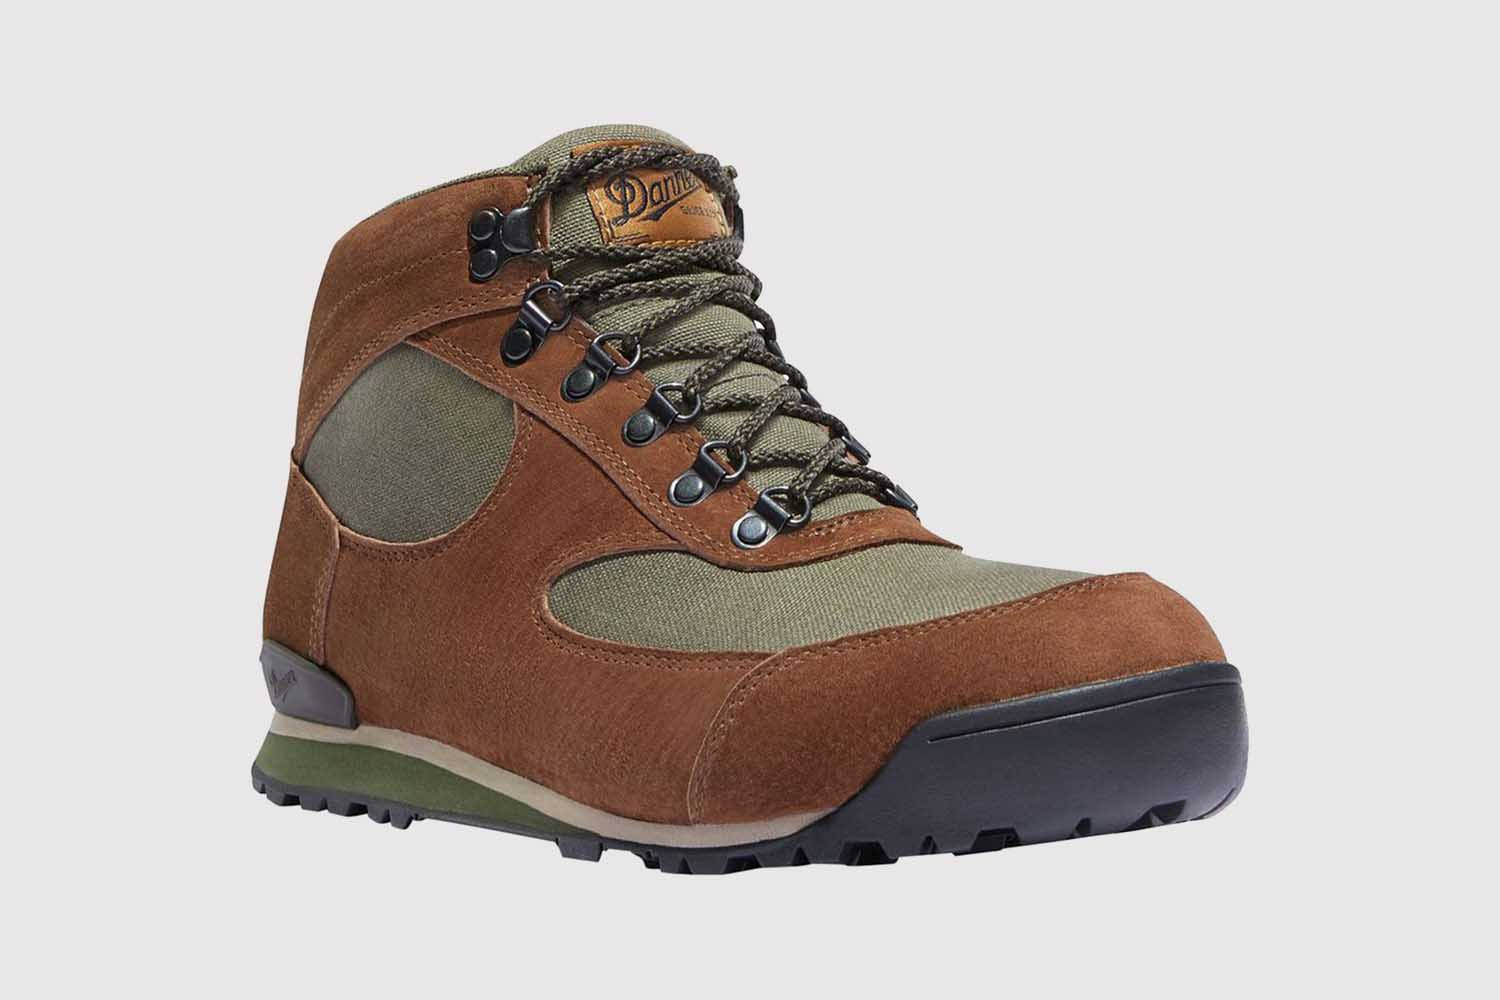 Deal: Save $70 on This Adventure-Ready Danner Hiking Boot